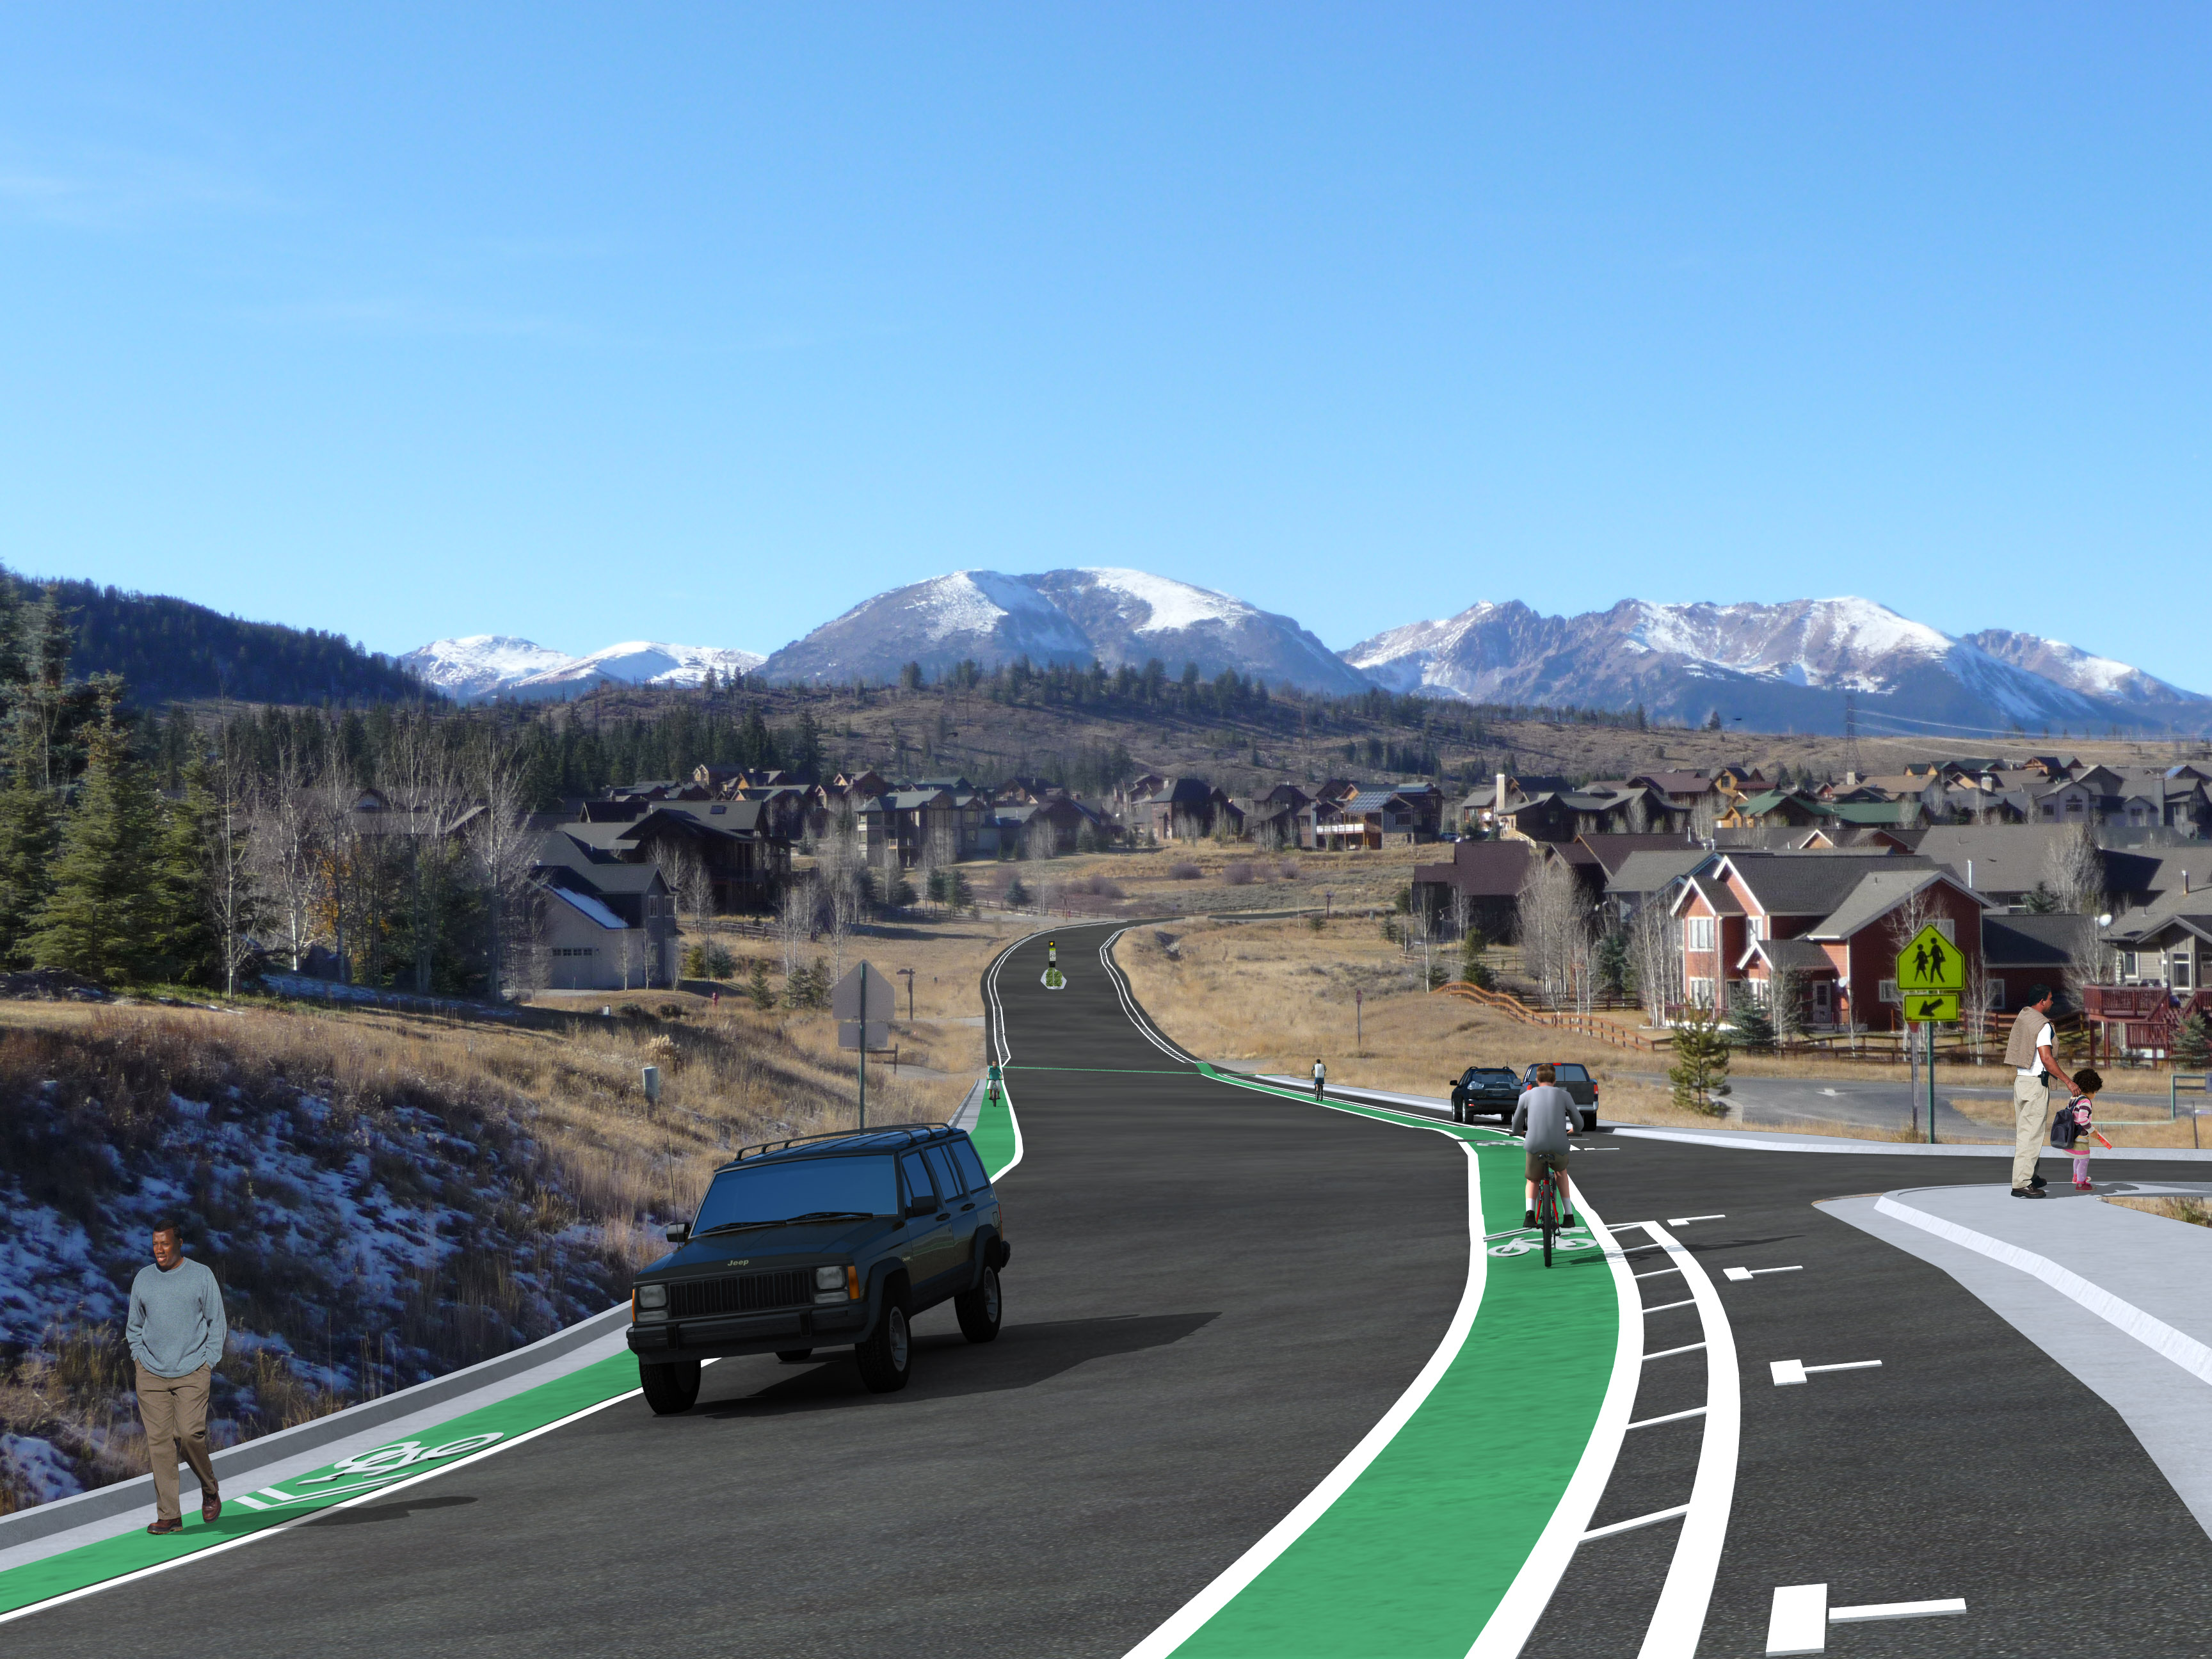 Photo of a road with green bike lanes on either side